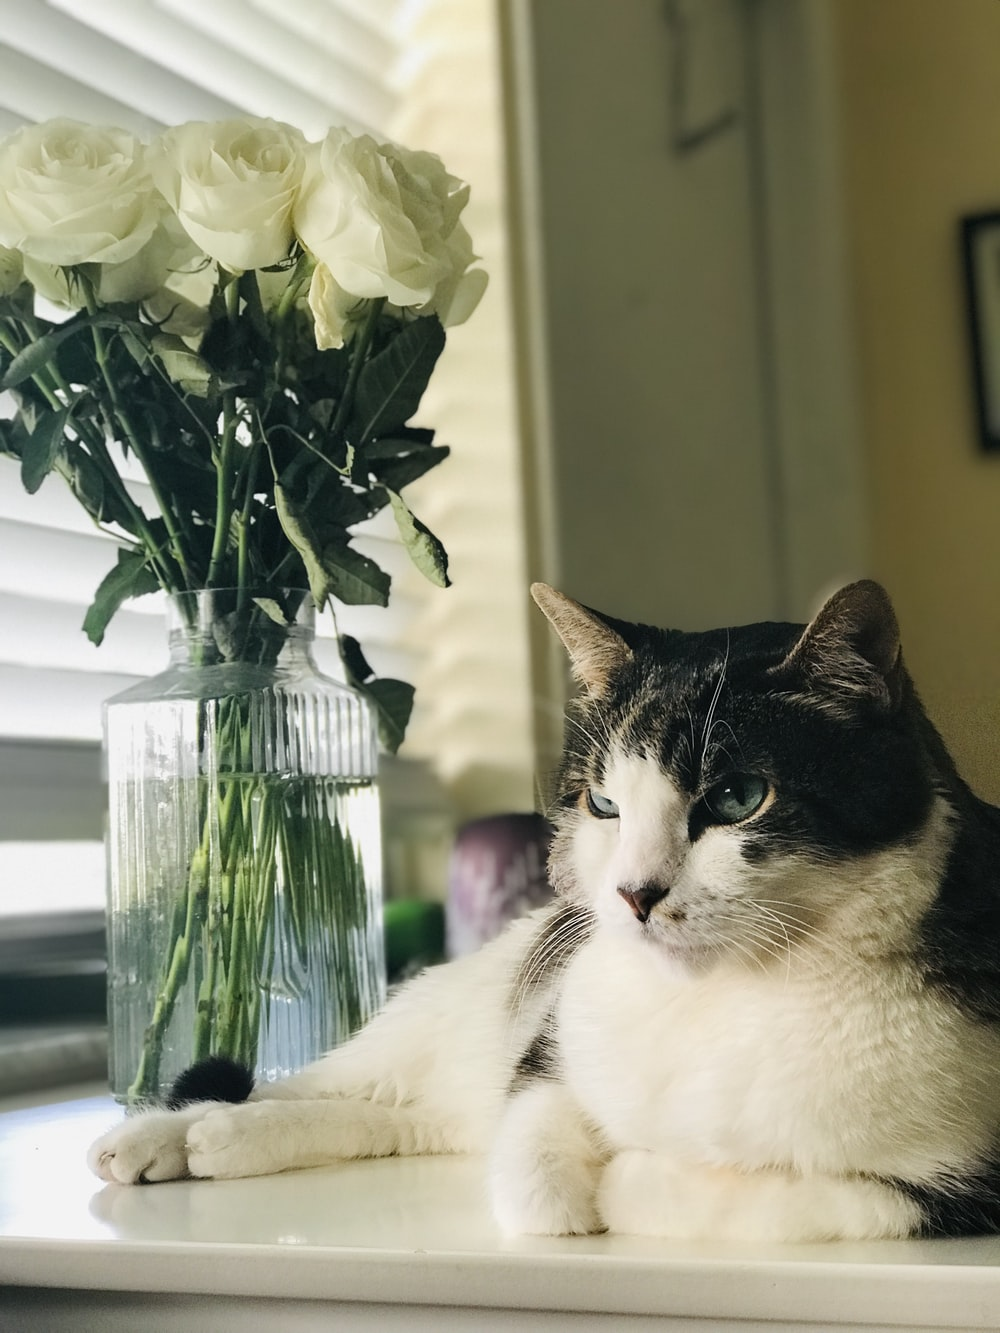 black tabby and white cat lying on white surface beside glass vase and window with Venetian blinds